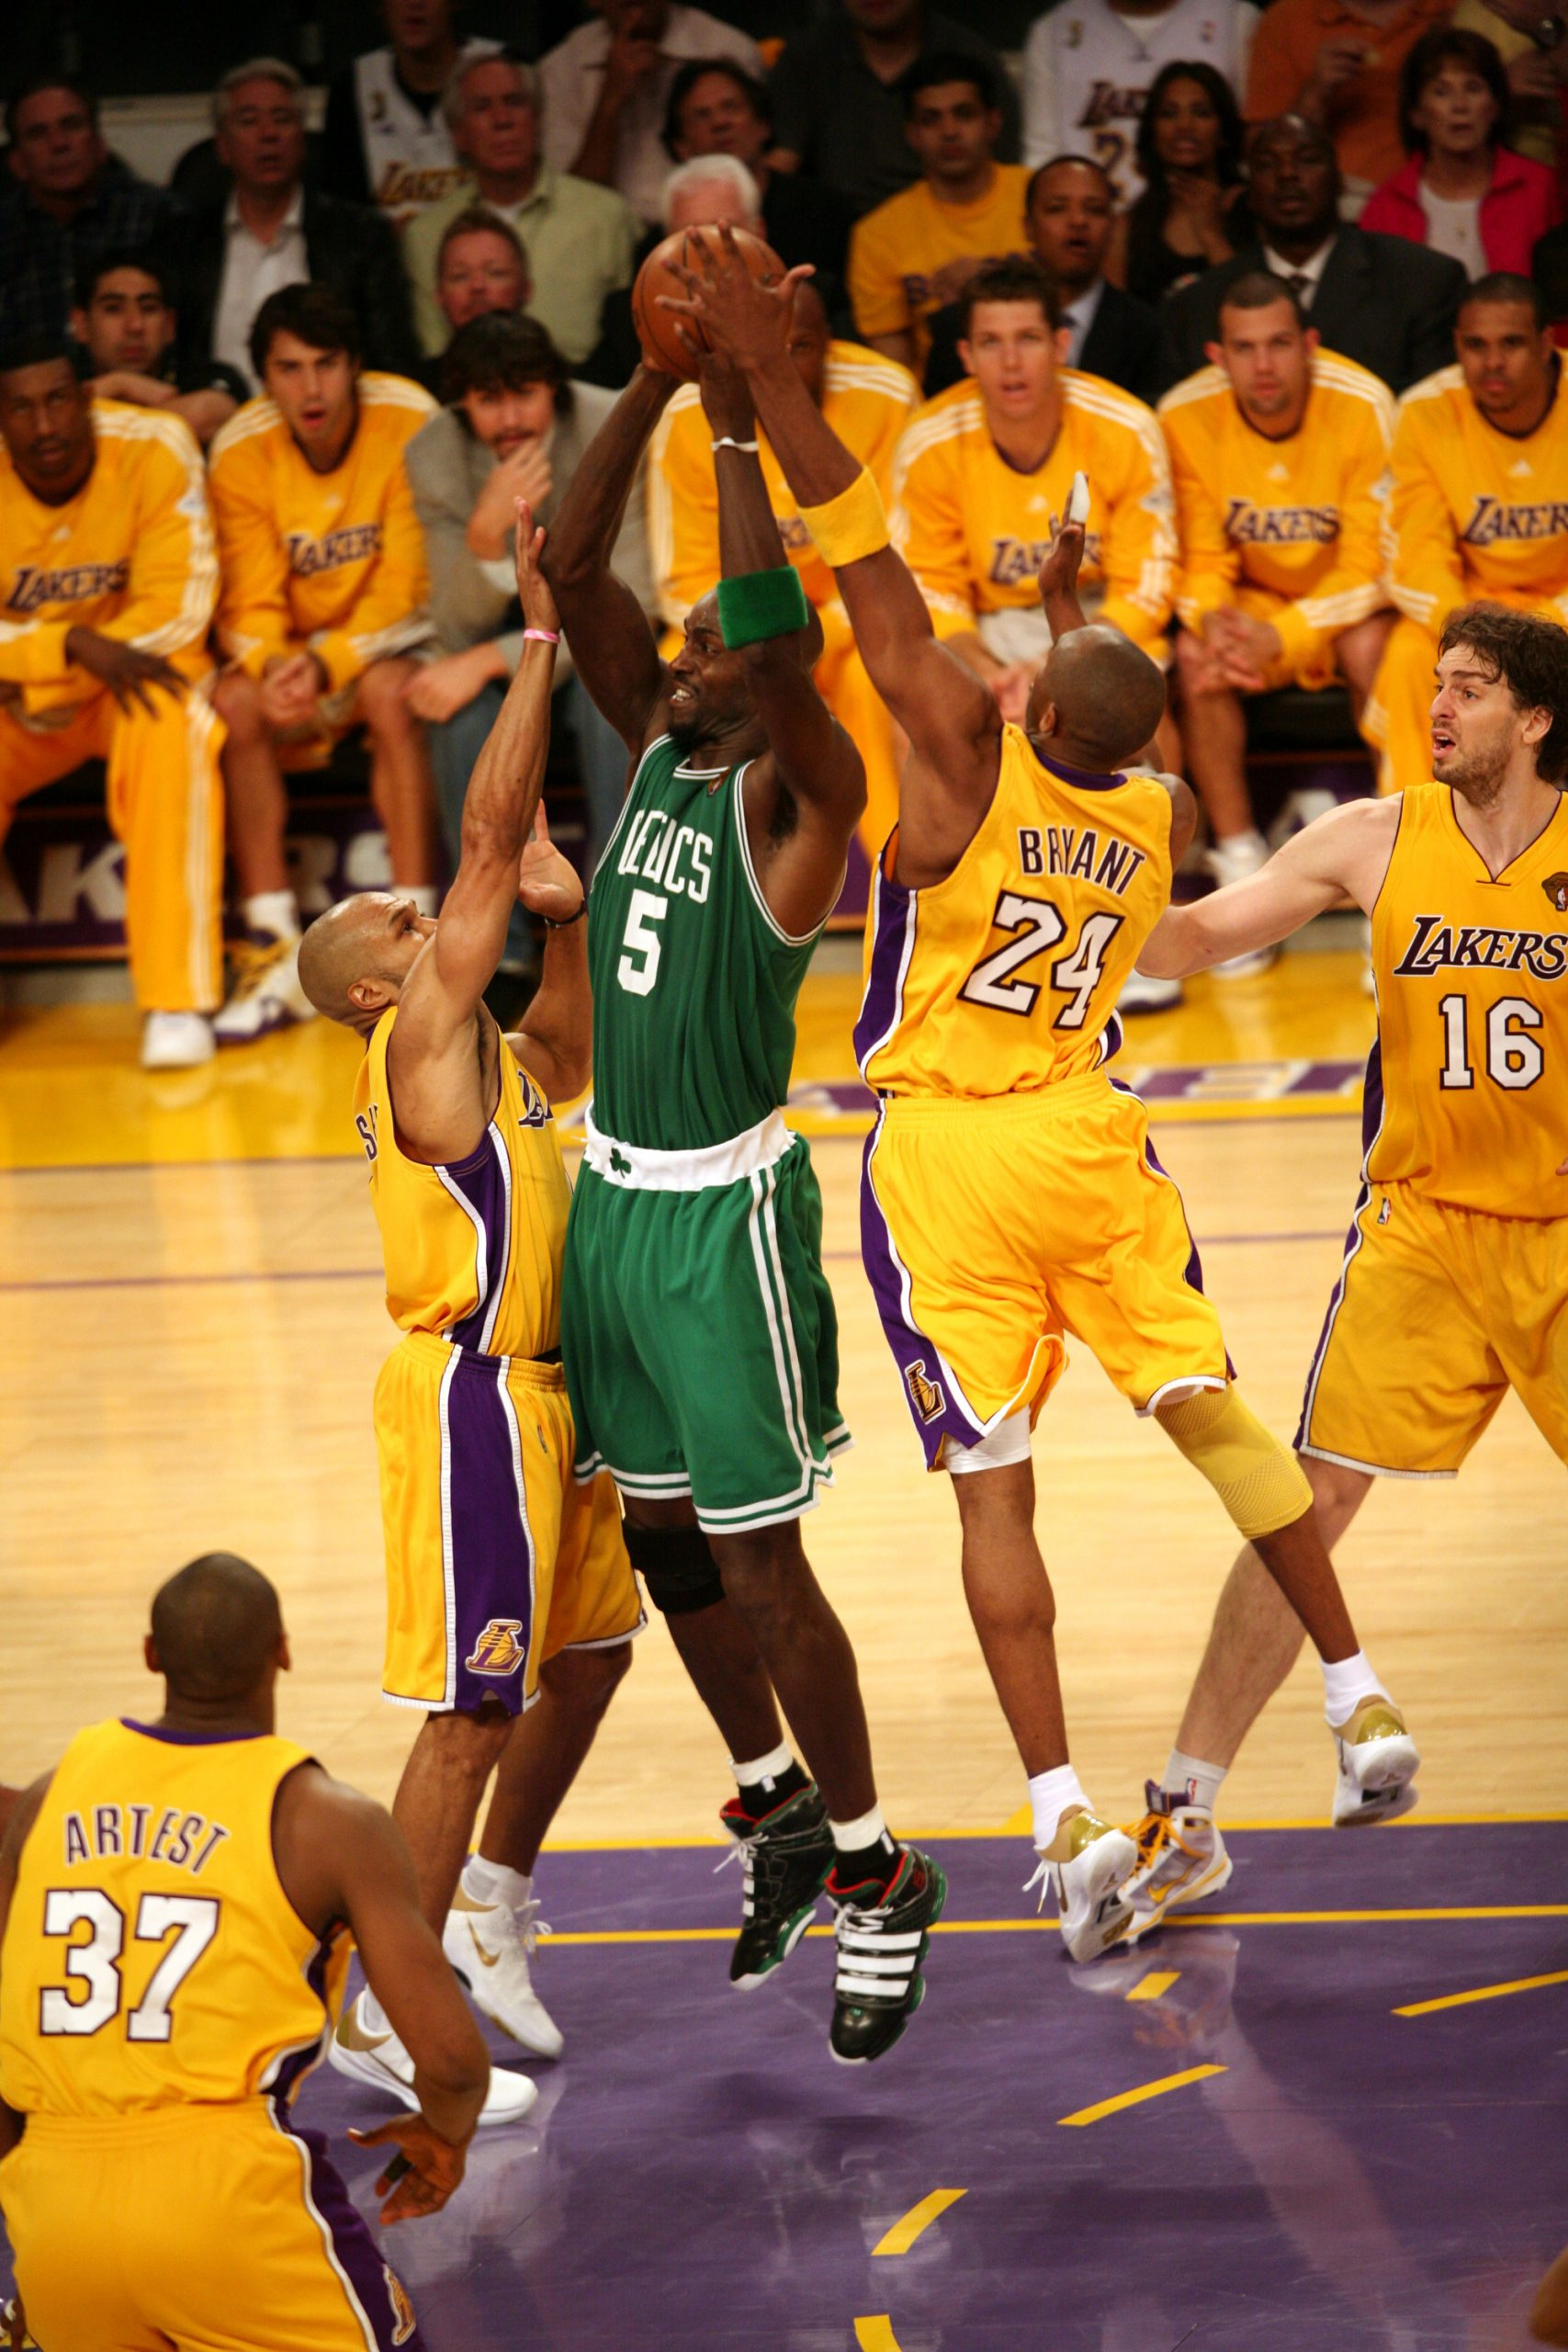 Lakers and Celtics Dance Once More Time